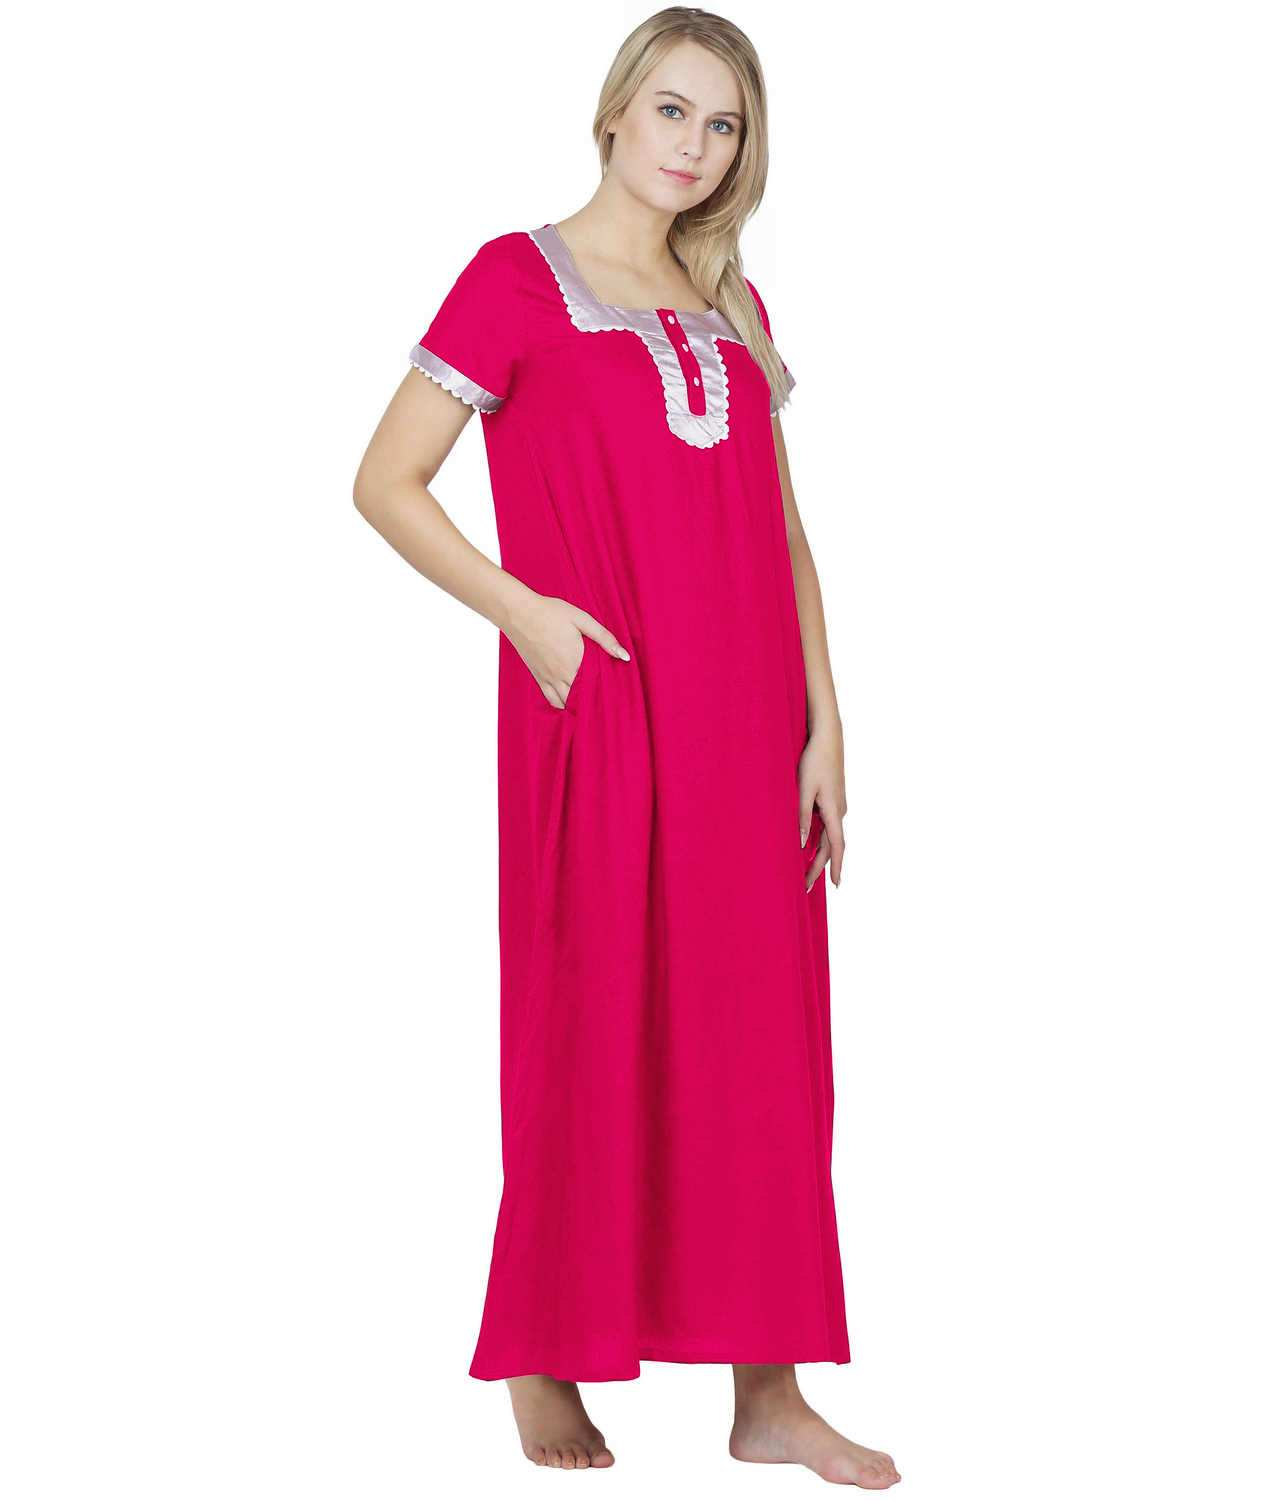 Embellished Square Neck Maxi Night-Gown Nighty in Fuchsia